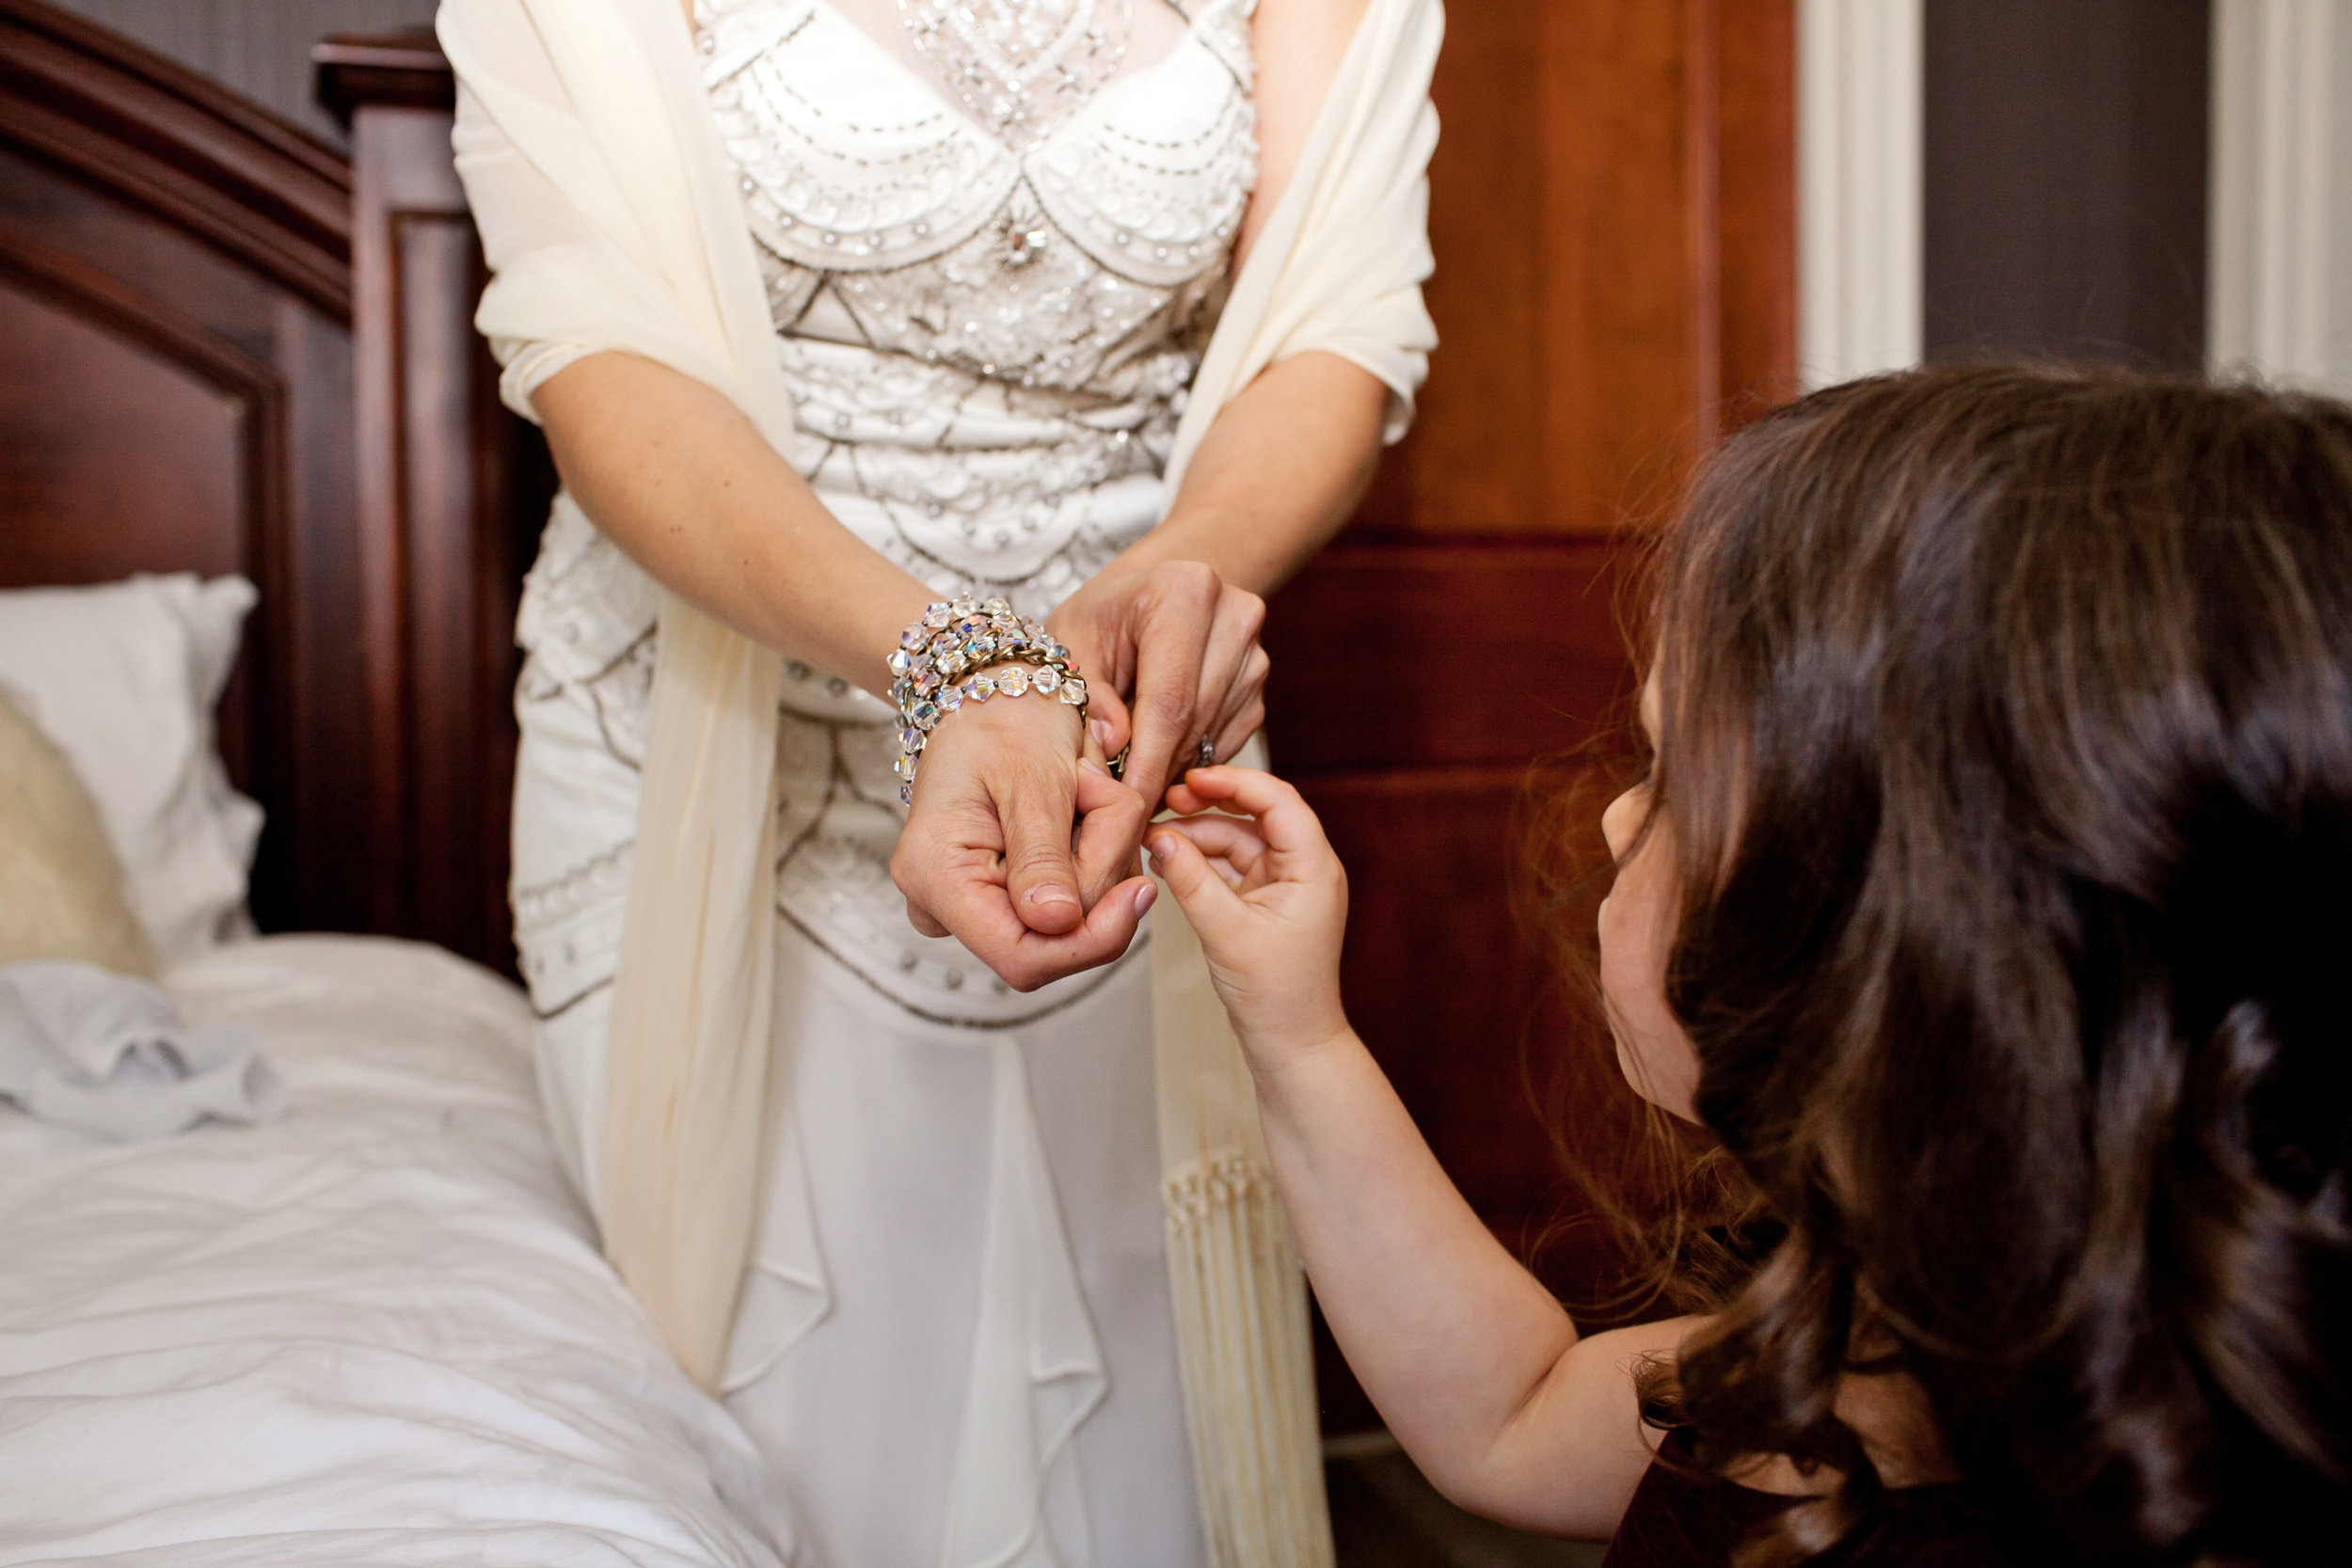 4 bride getting ready bride putting on dress unique wedding dress off white wedding dress detailed wedding dress Life Design Events.jpg